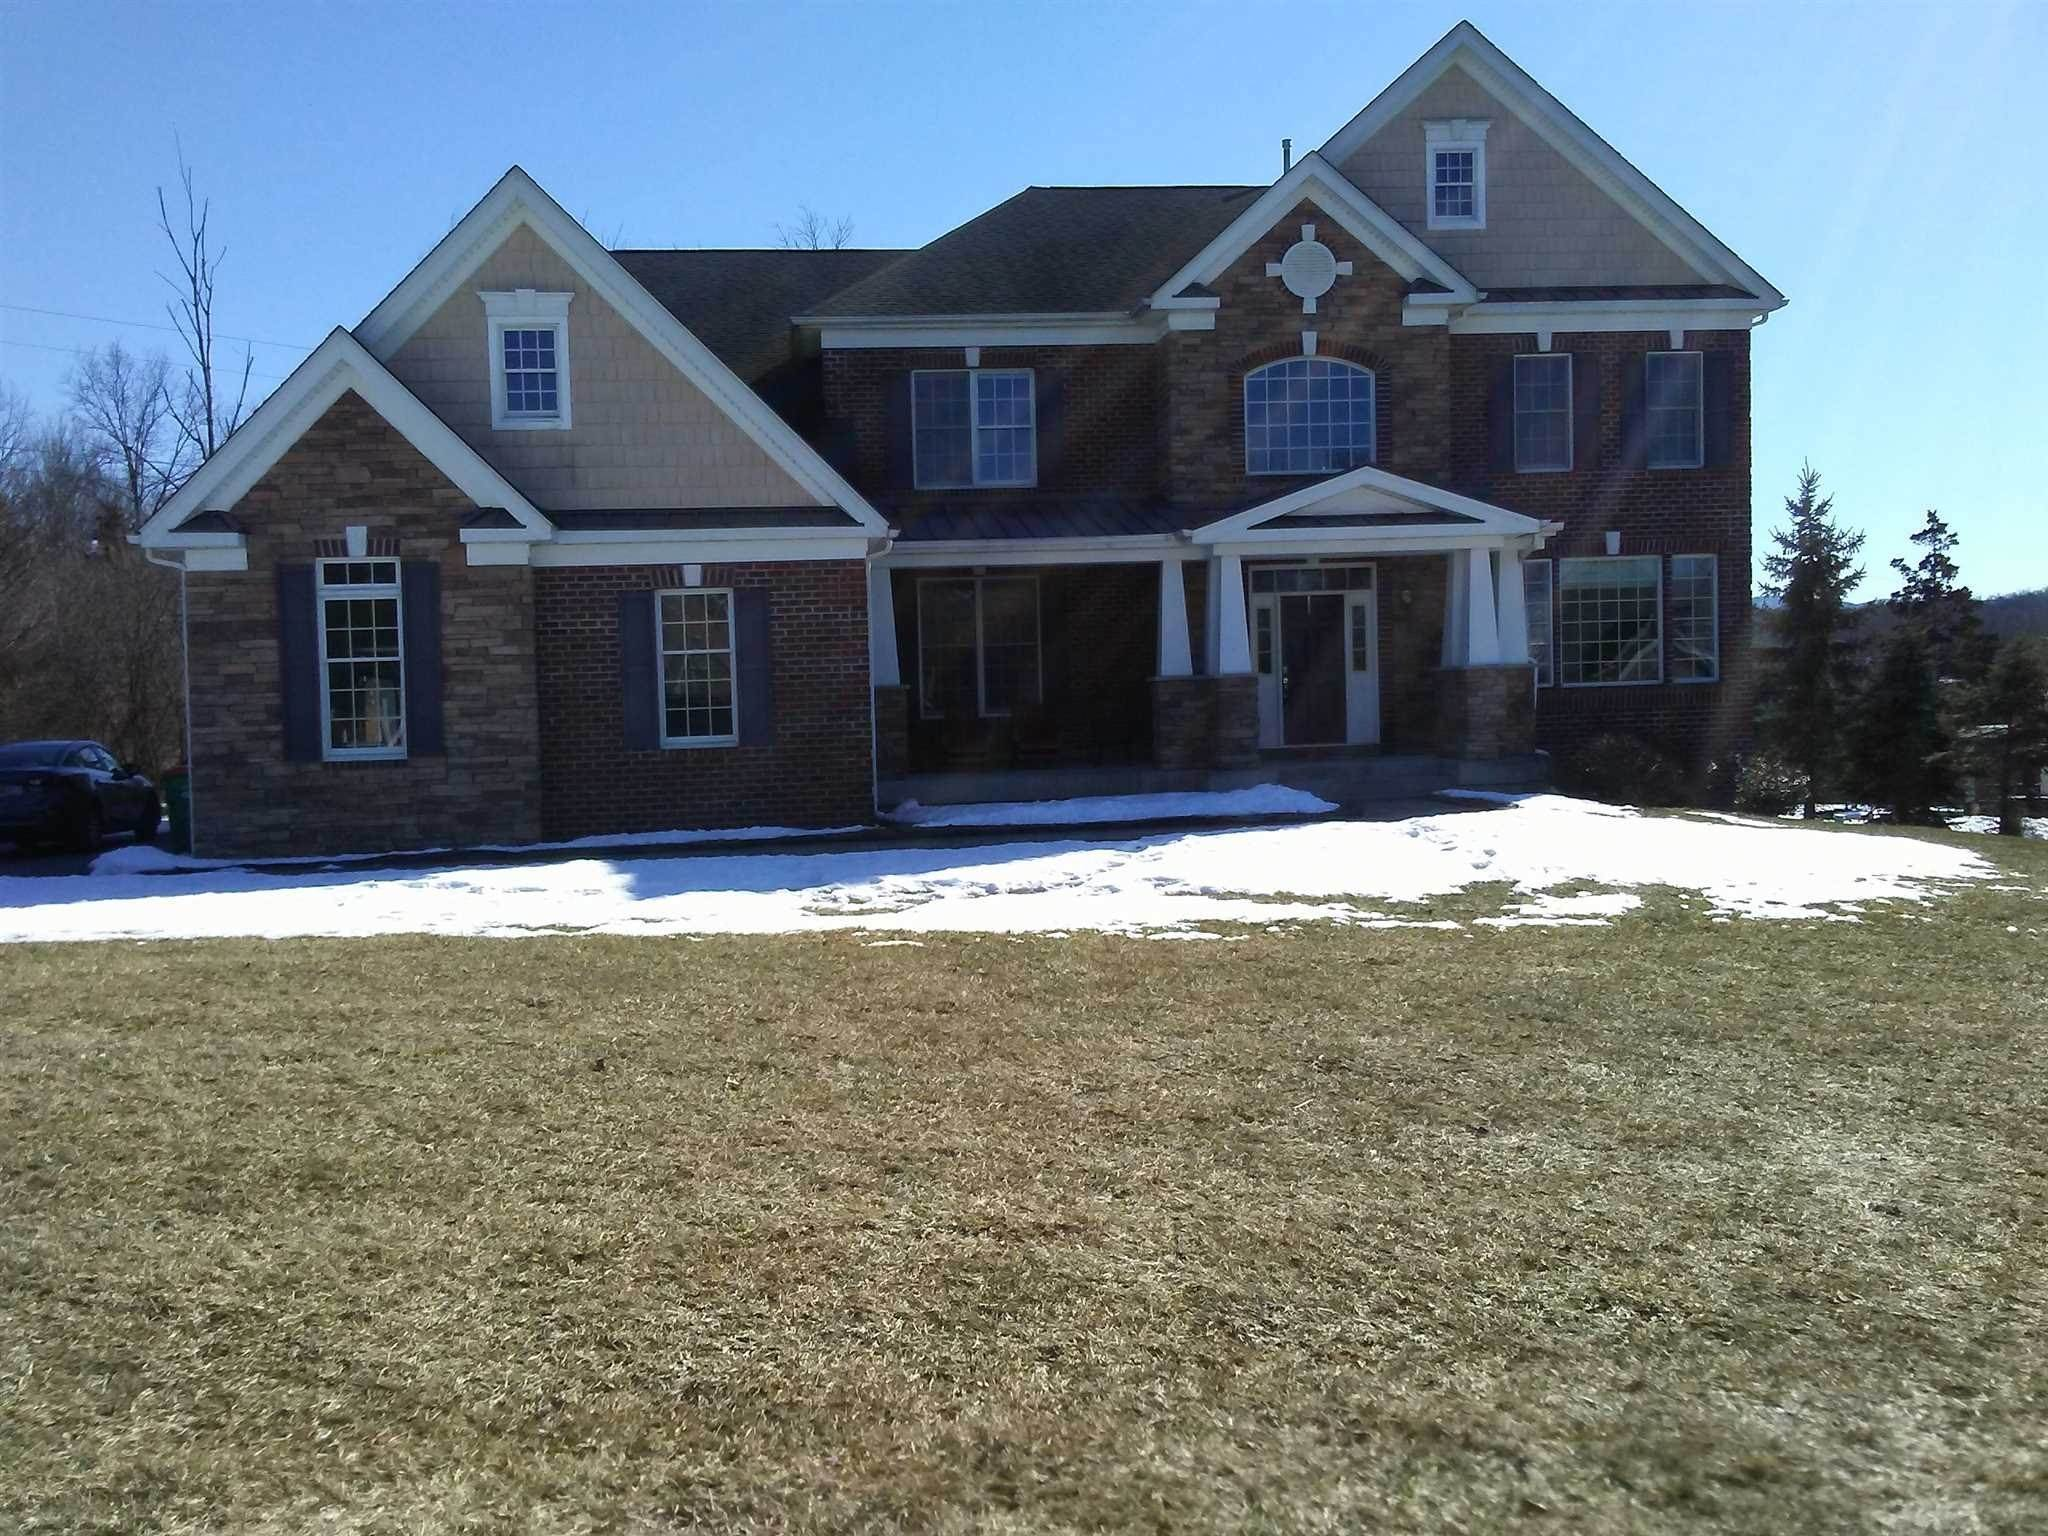 Single Family Homes for Sale at 104 SHAMROCK HILLS Drive Wappinger, New York 12590 United States